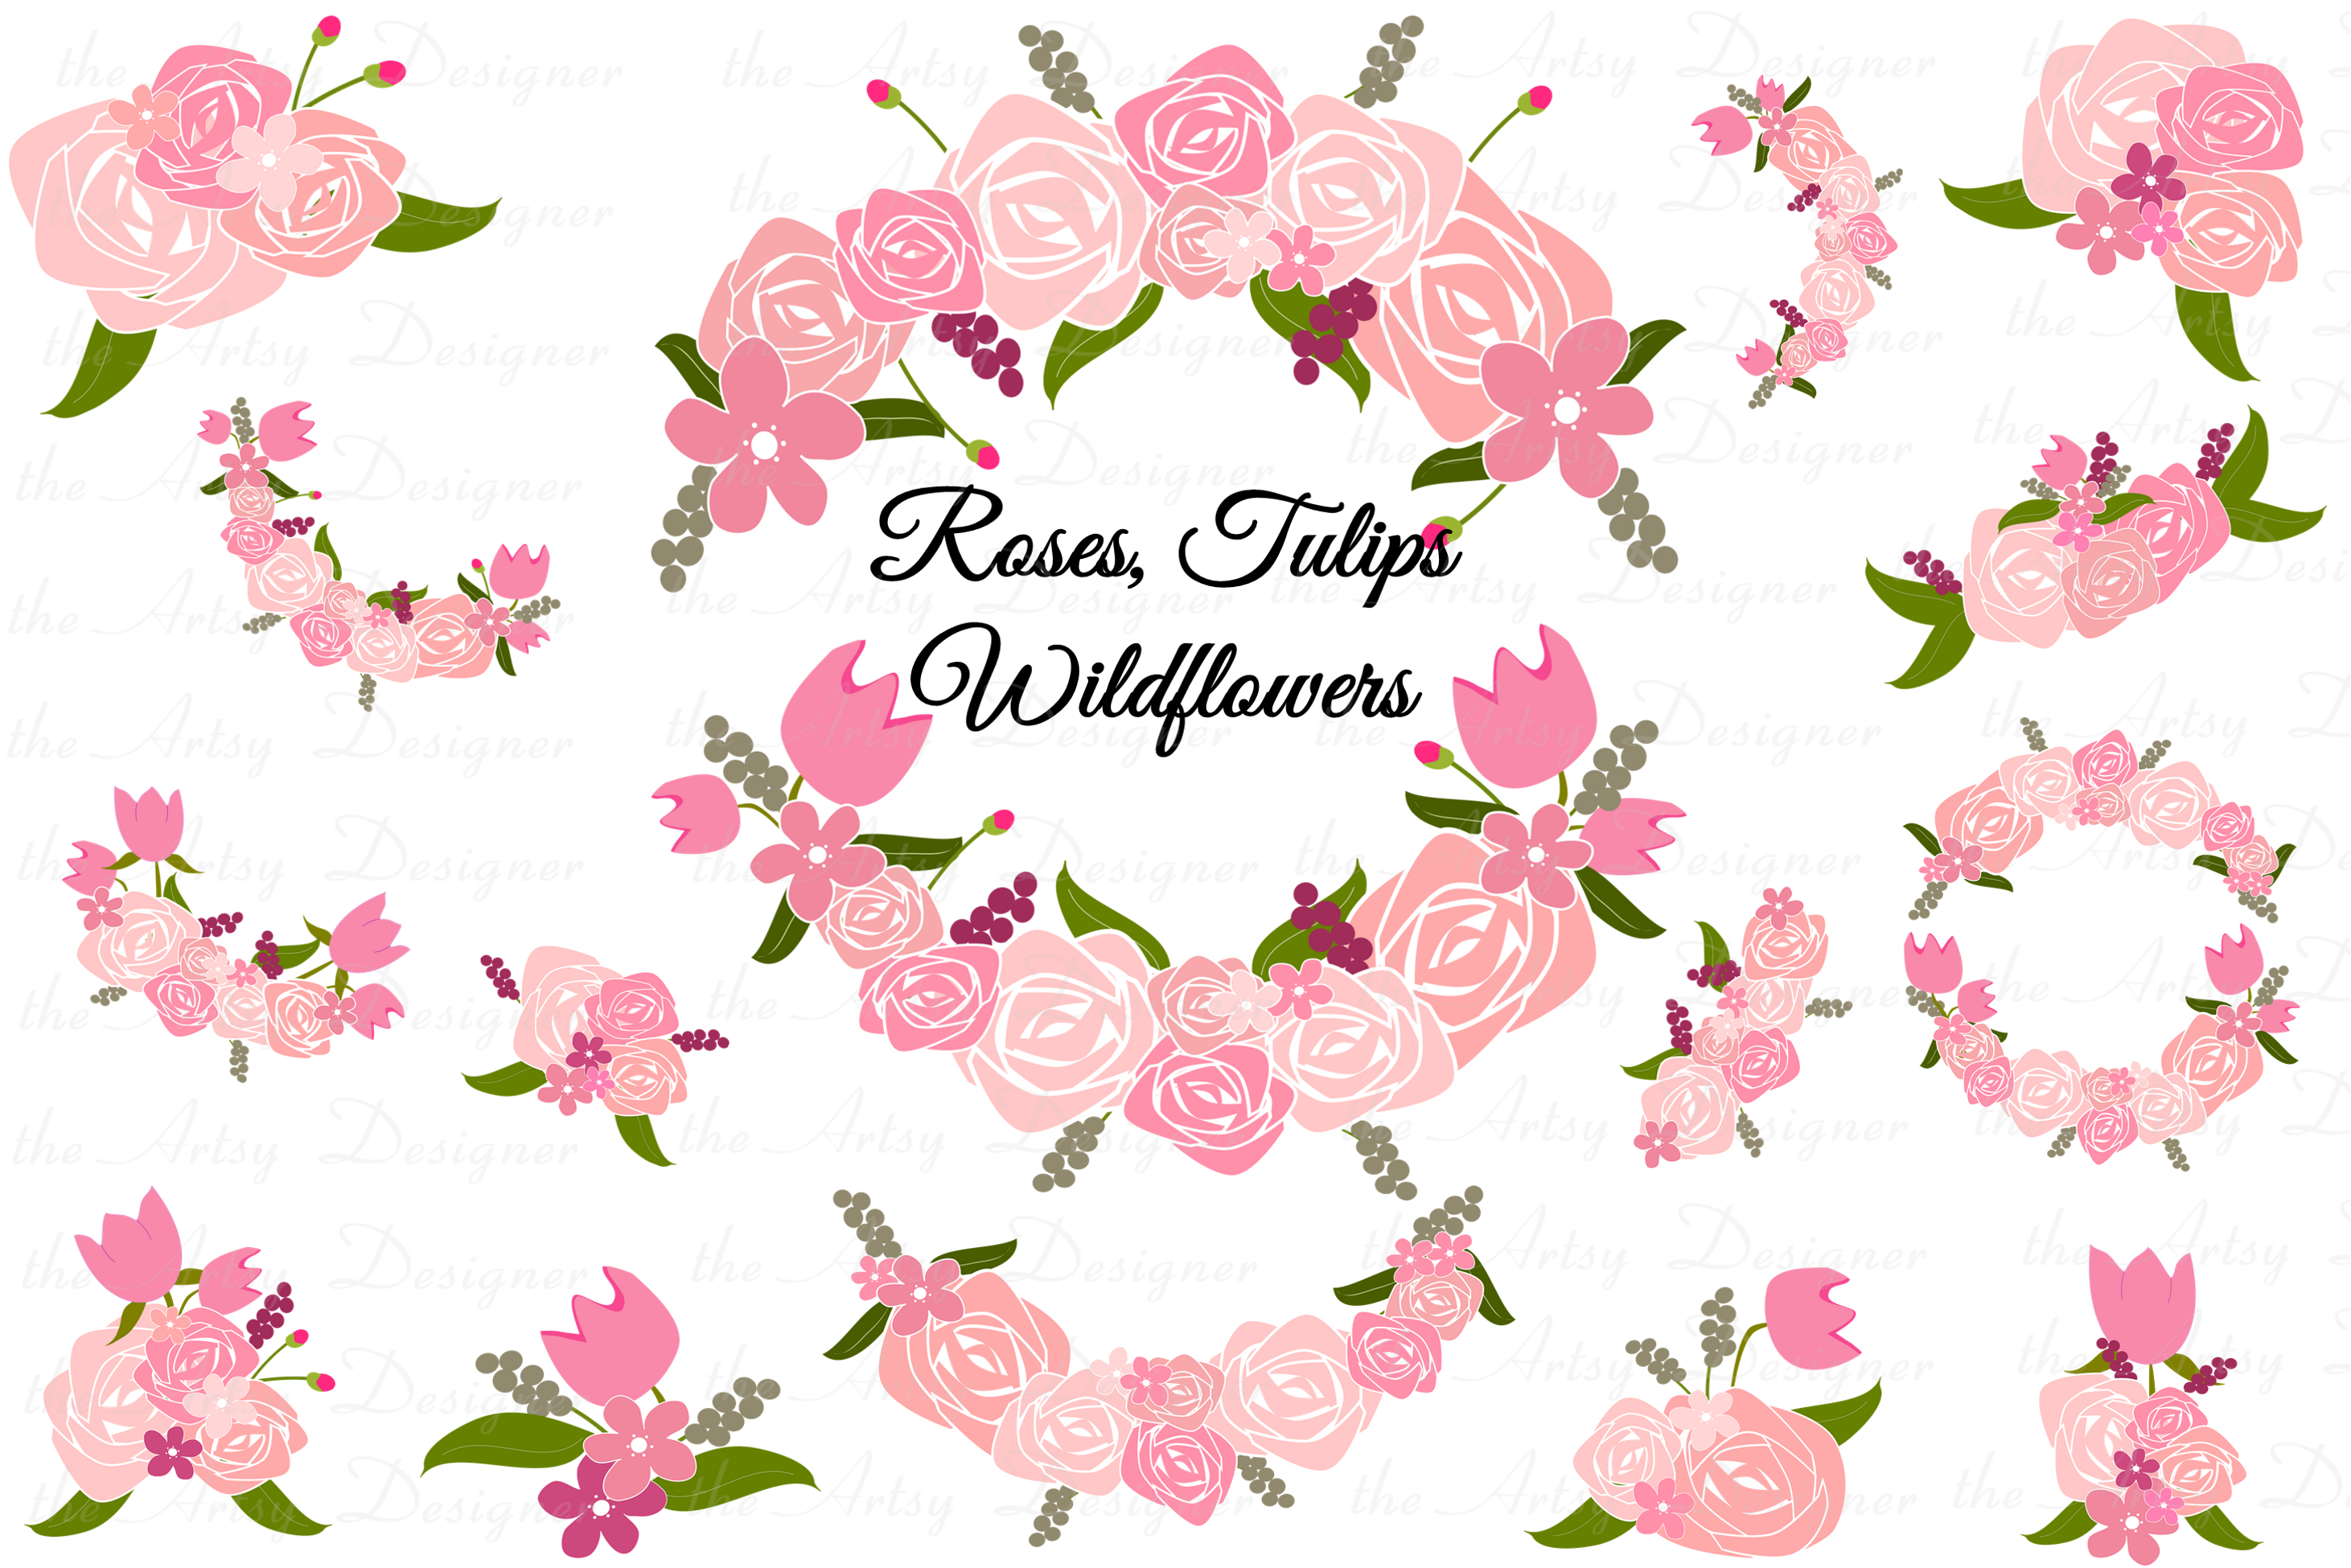 Pink Roses Tulips Flowers Sublimation Clipart Swags Bundle example image 1